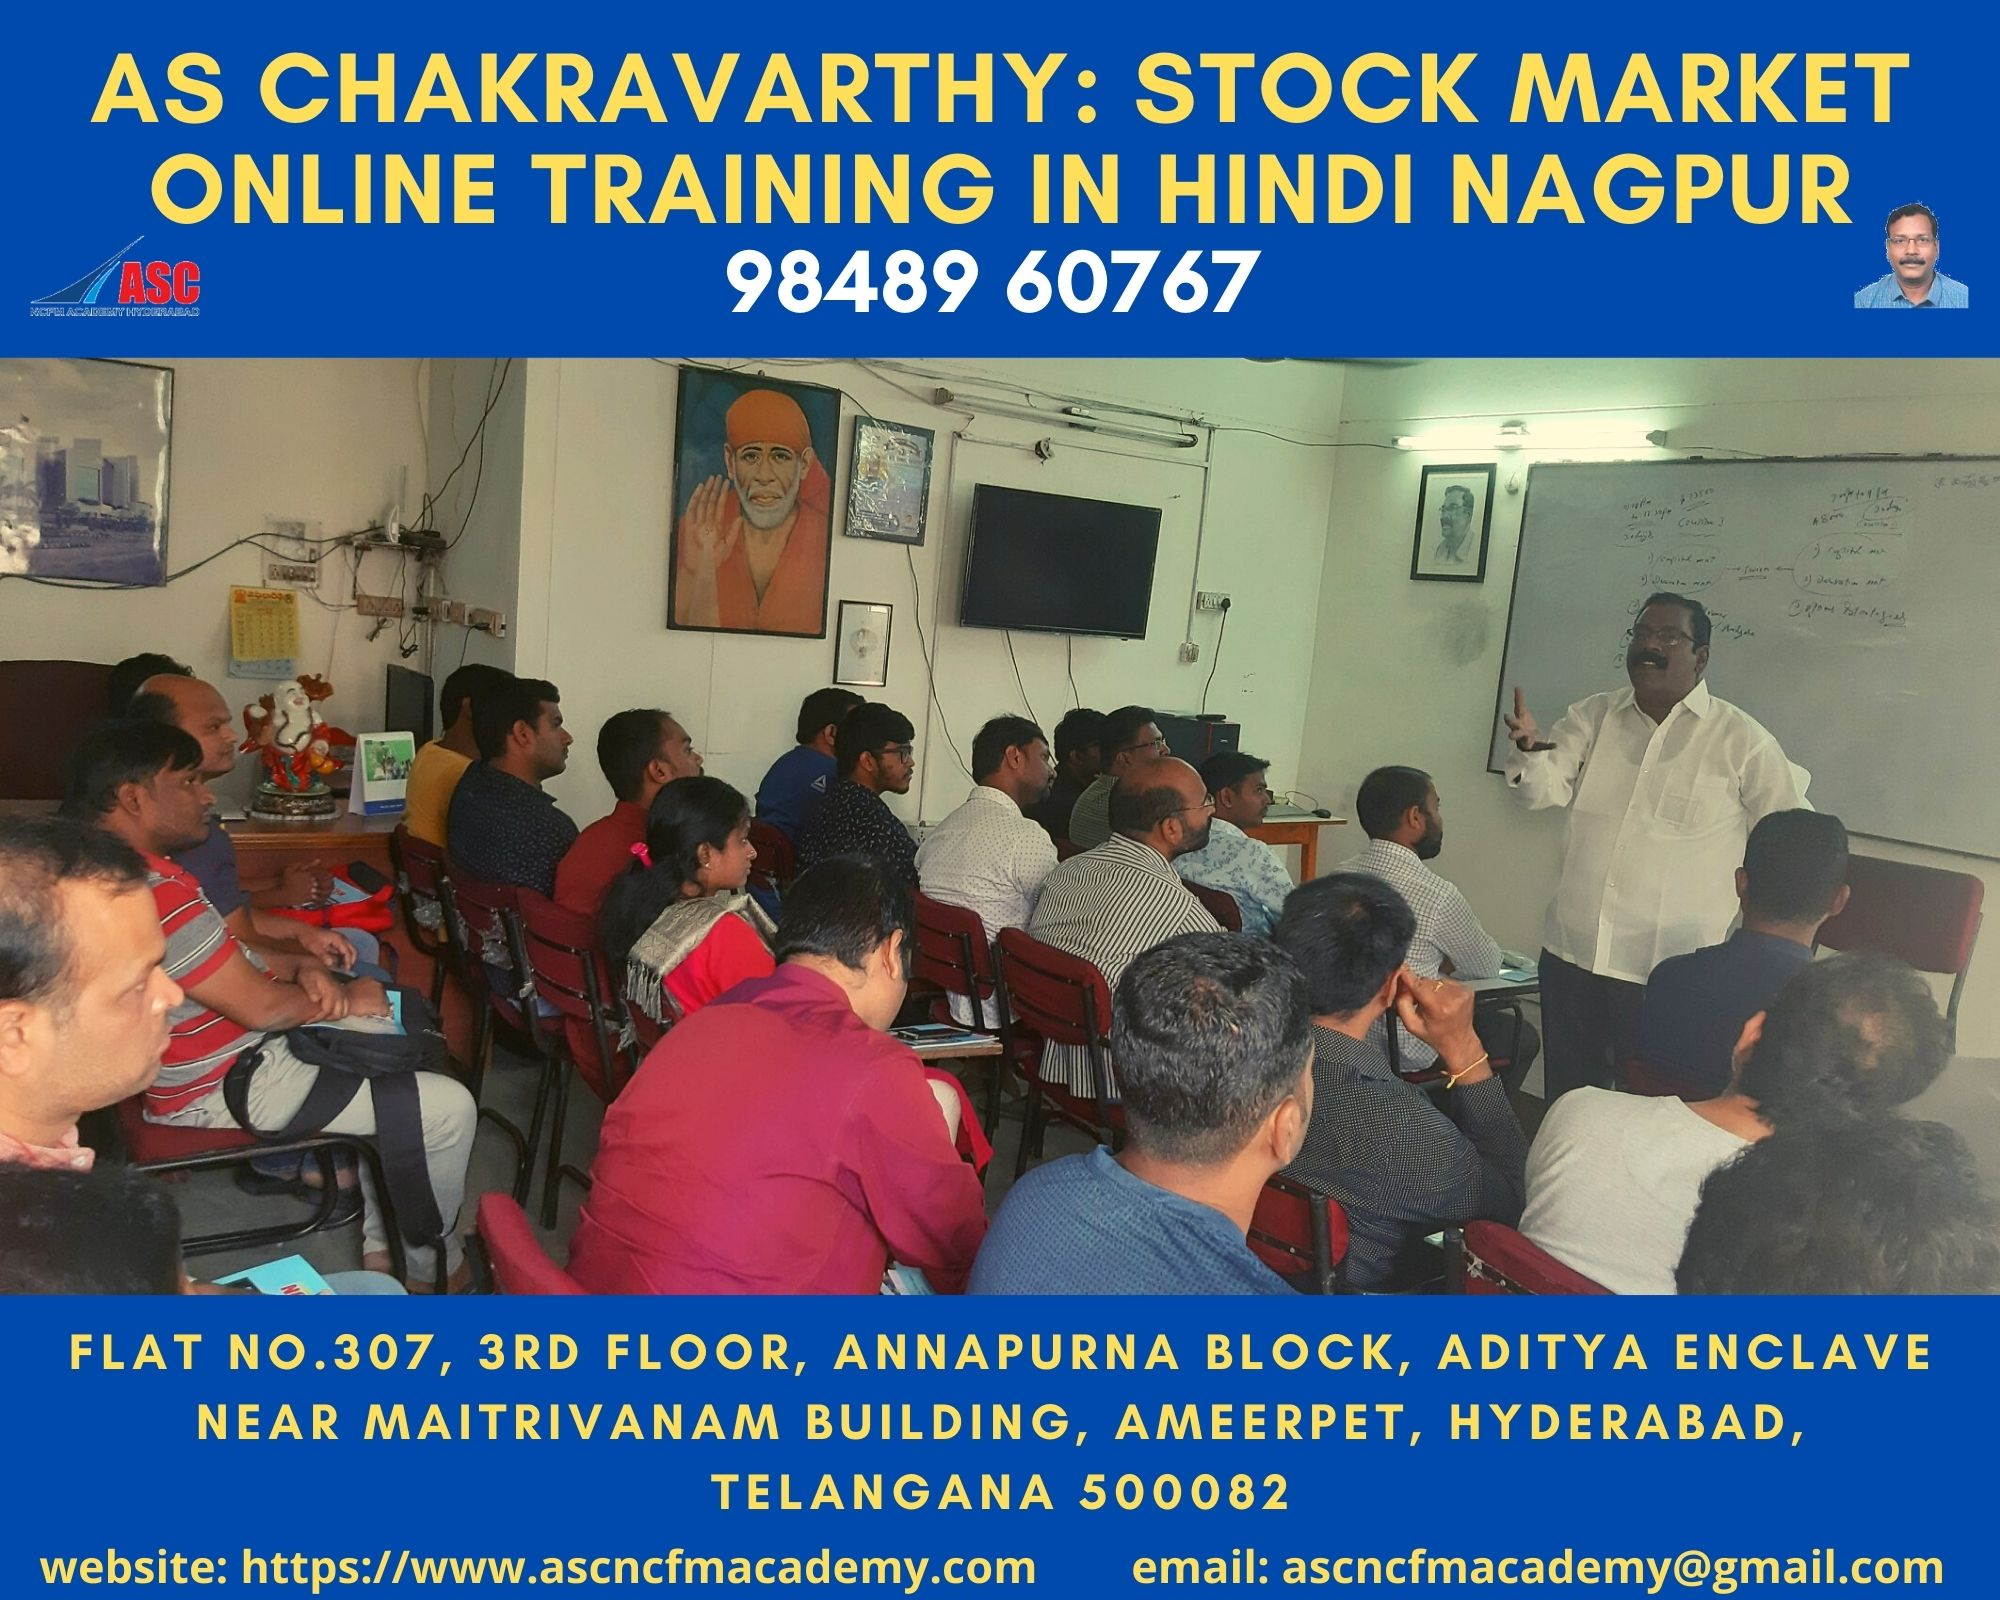 Online Stock Market Technical Training in Hindi Nagpur